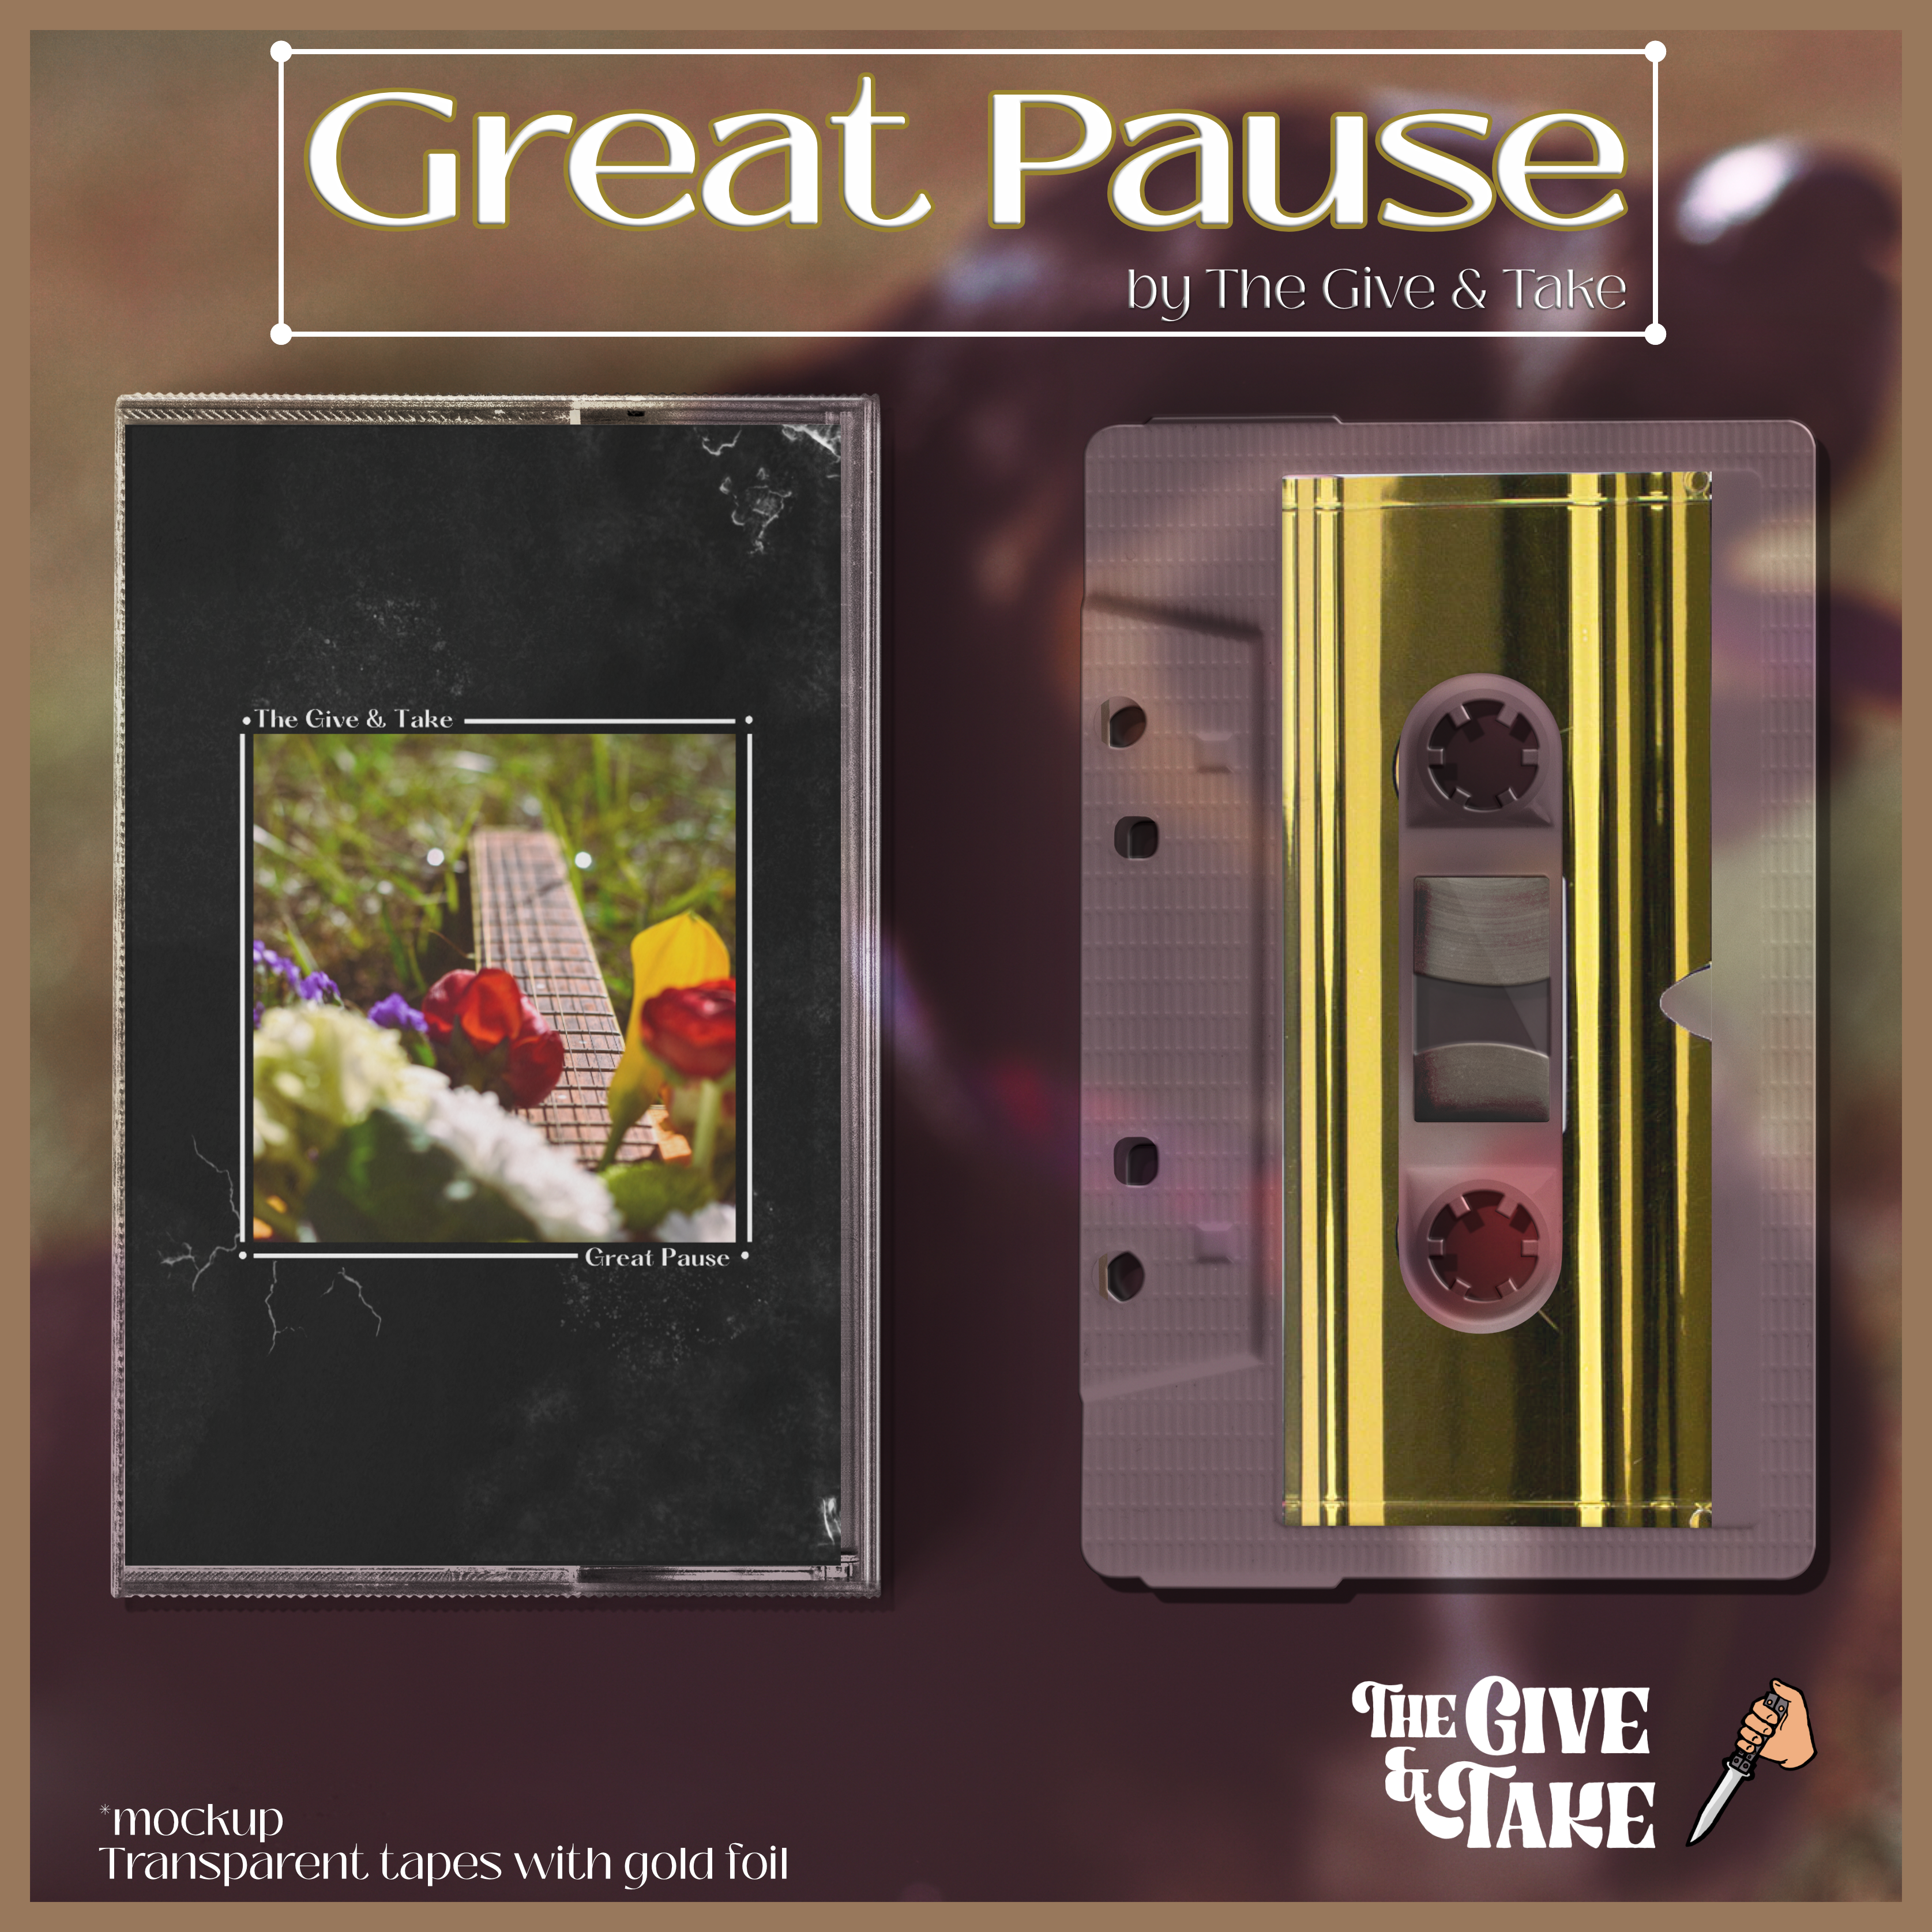 [KPR024] The Give & Take - Great Pause